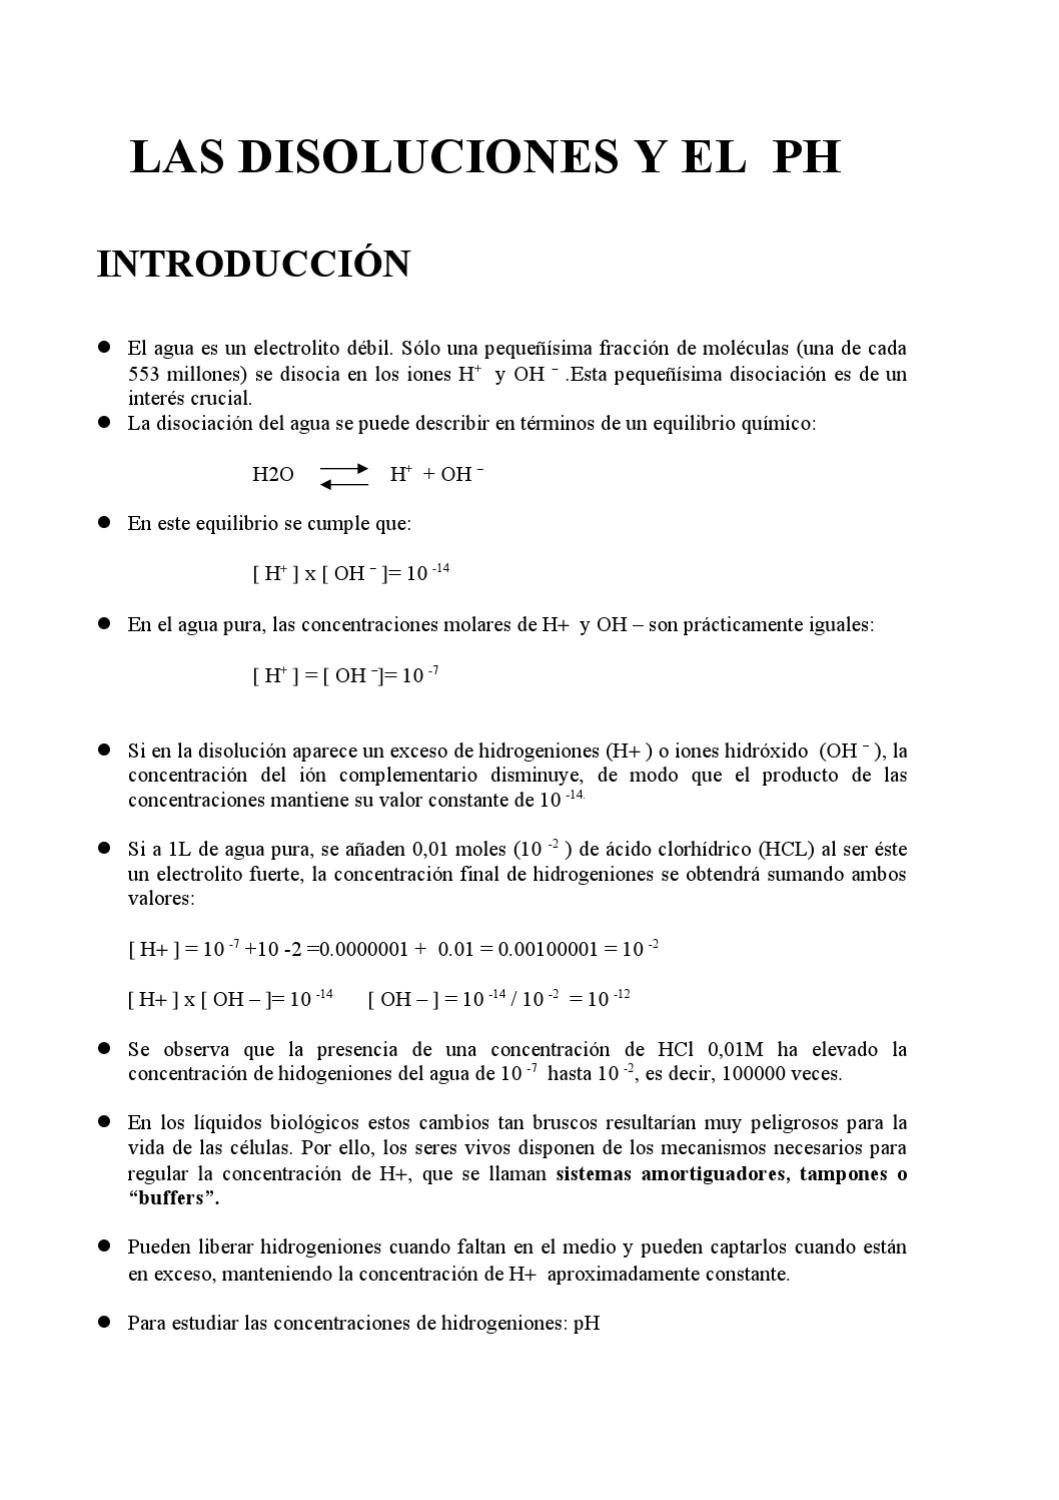 clase+12+disoluciones+4+el+pH by koala dispuesto - issuu